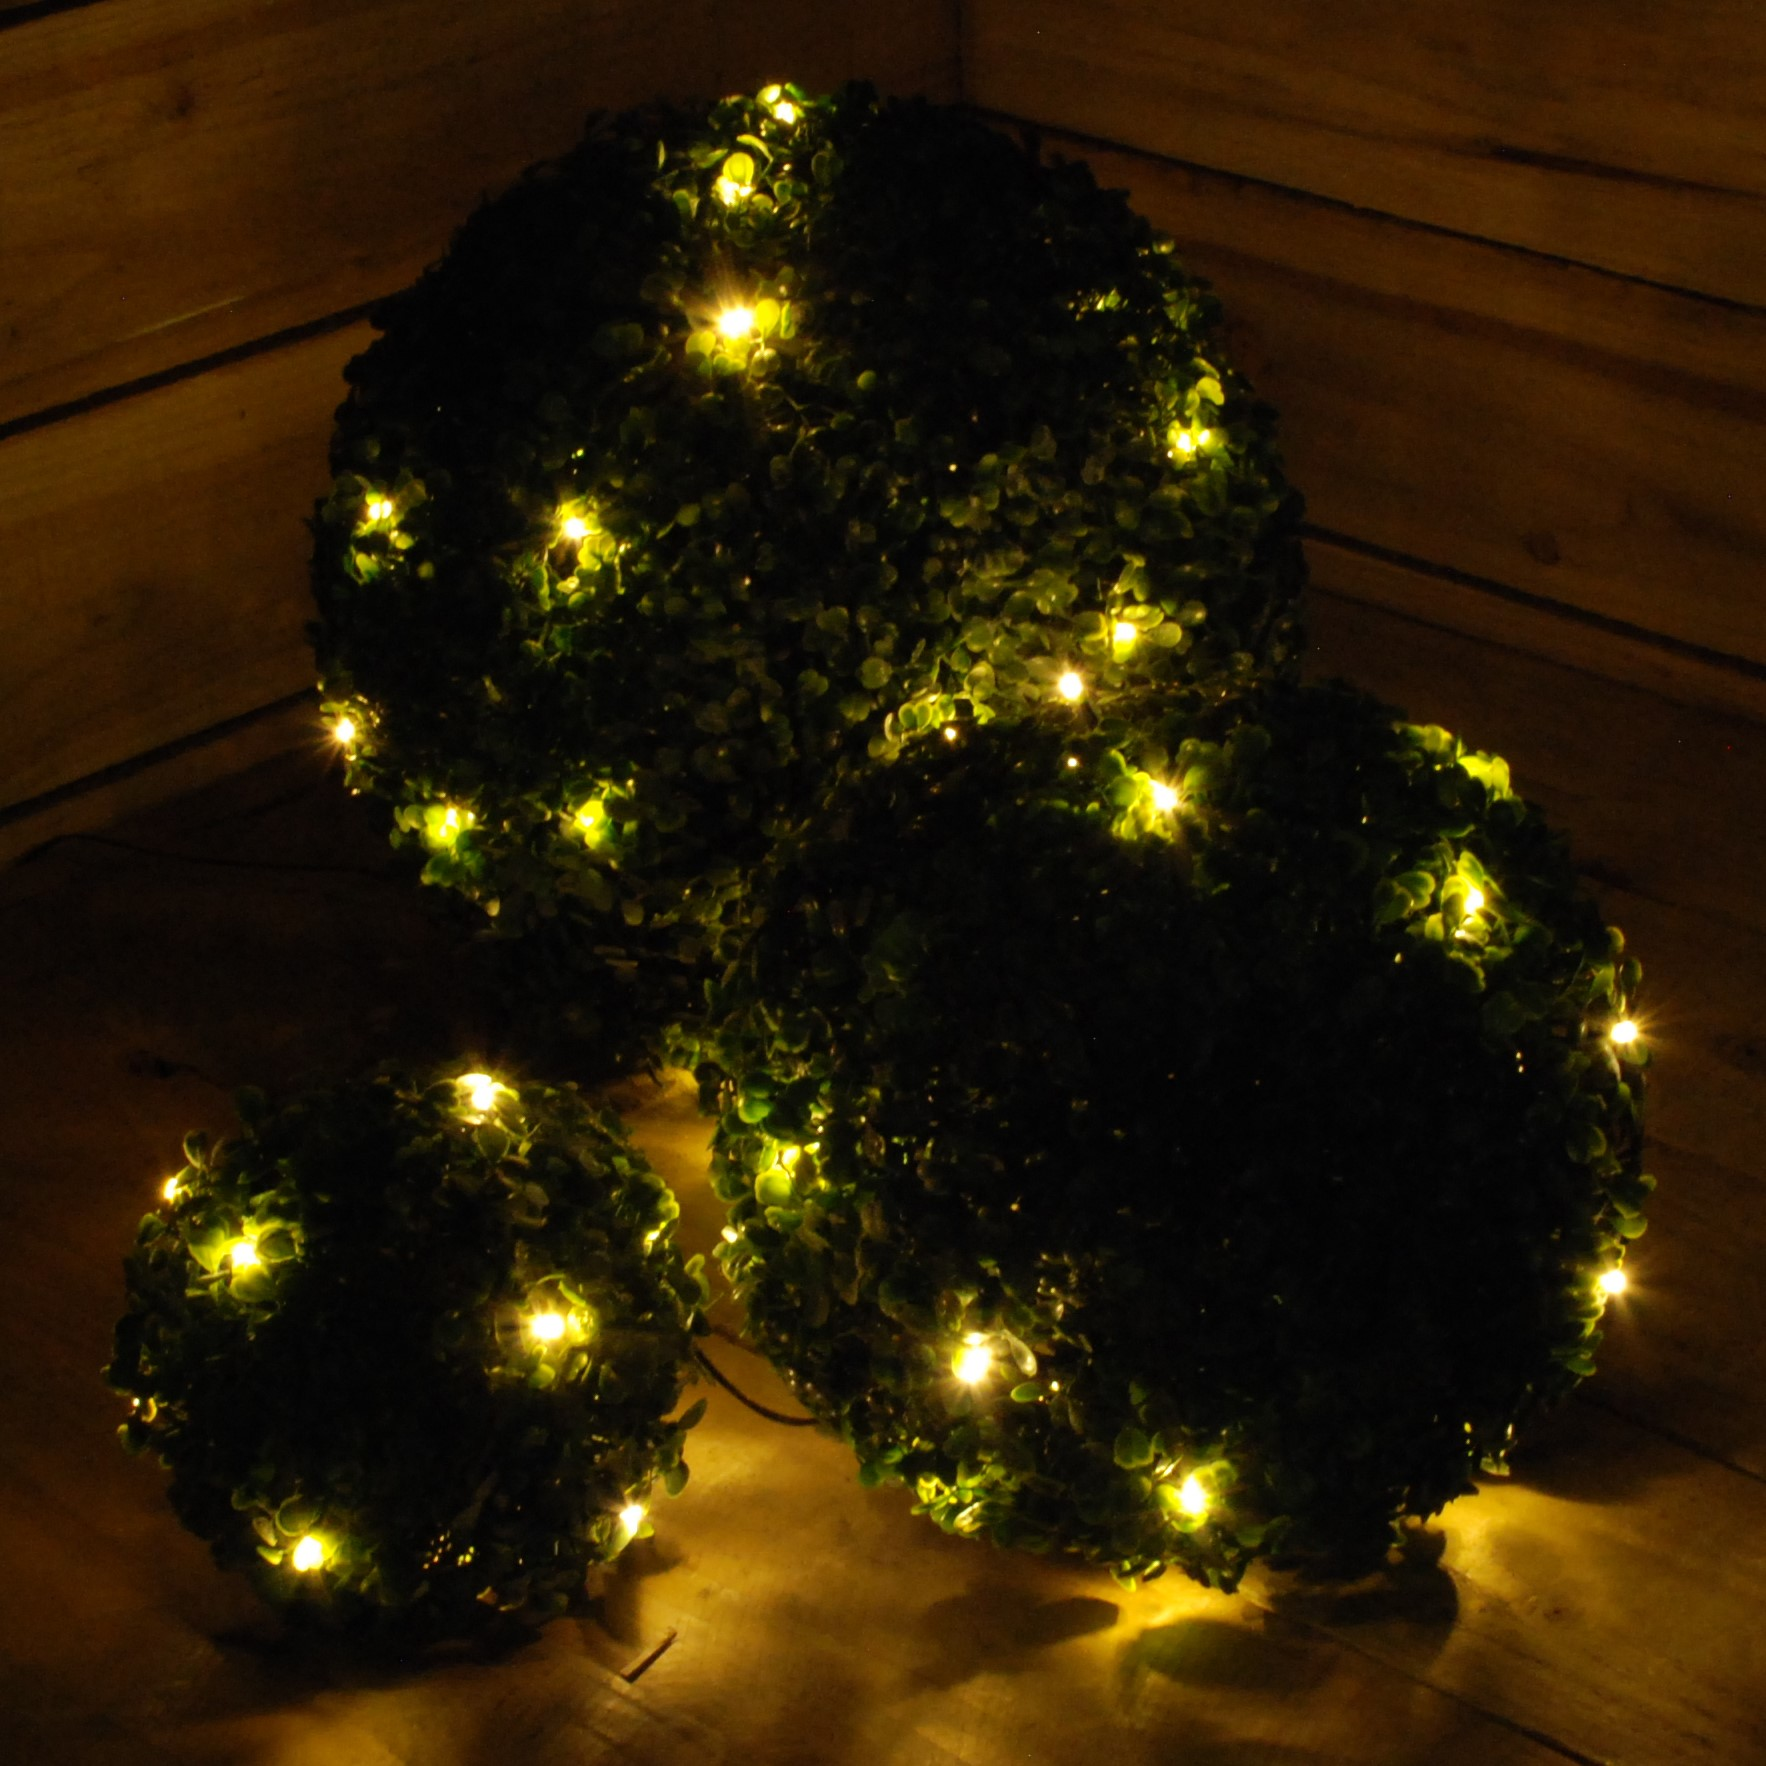 Christmas Topiary.Details About Set Of 3 Hanging Christmas Topiary Balls Lit With Warm White Led Lights